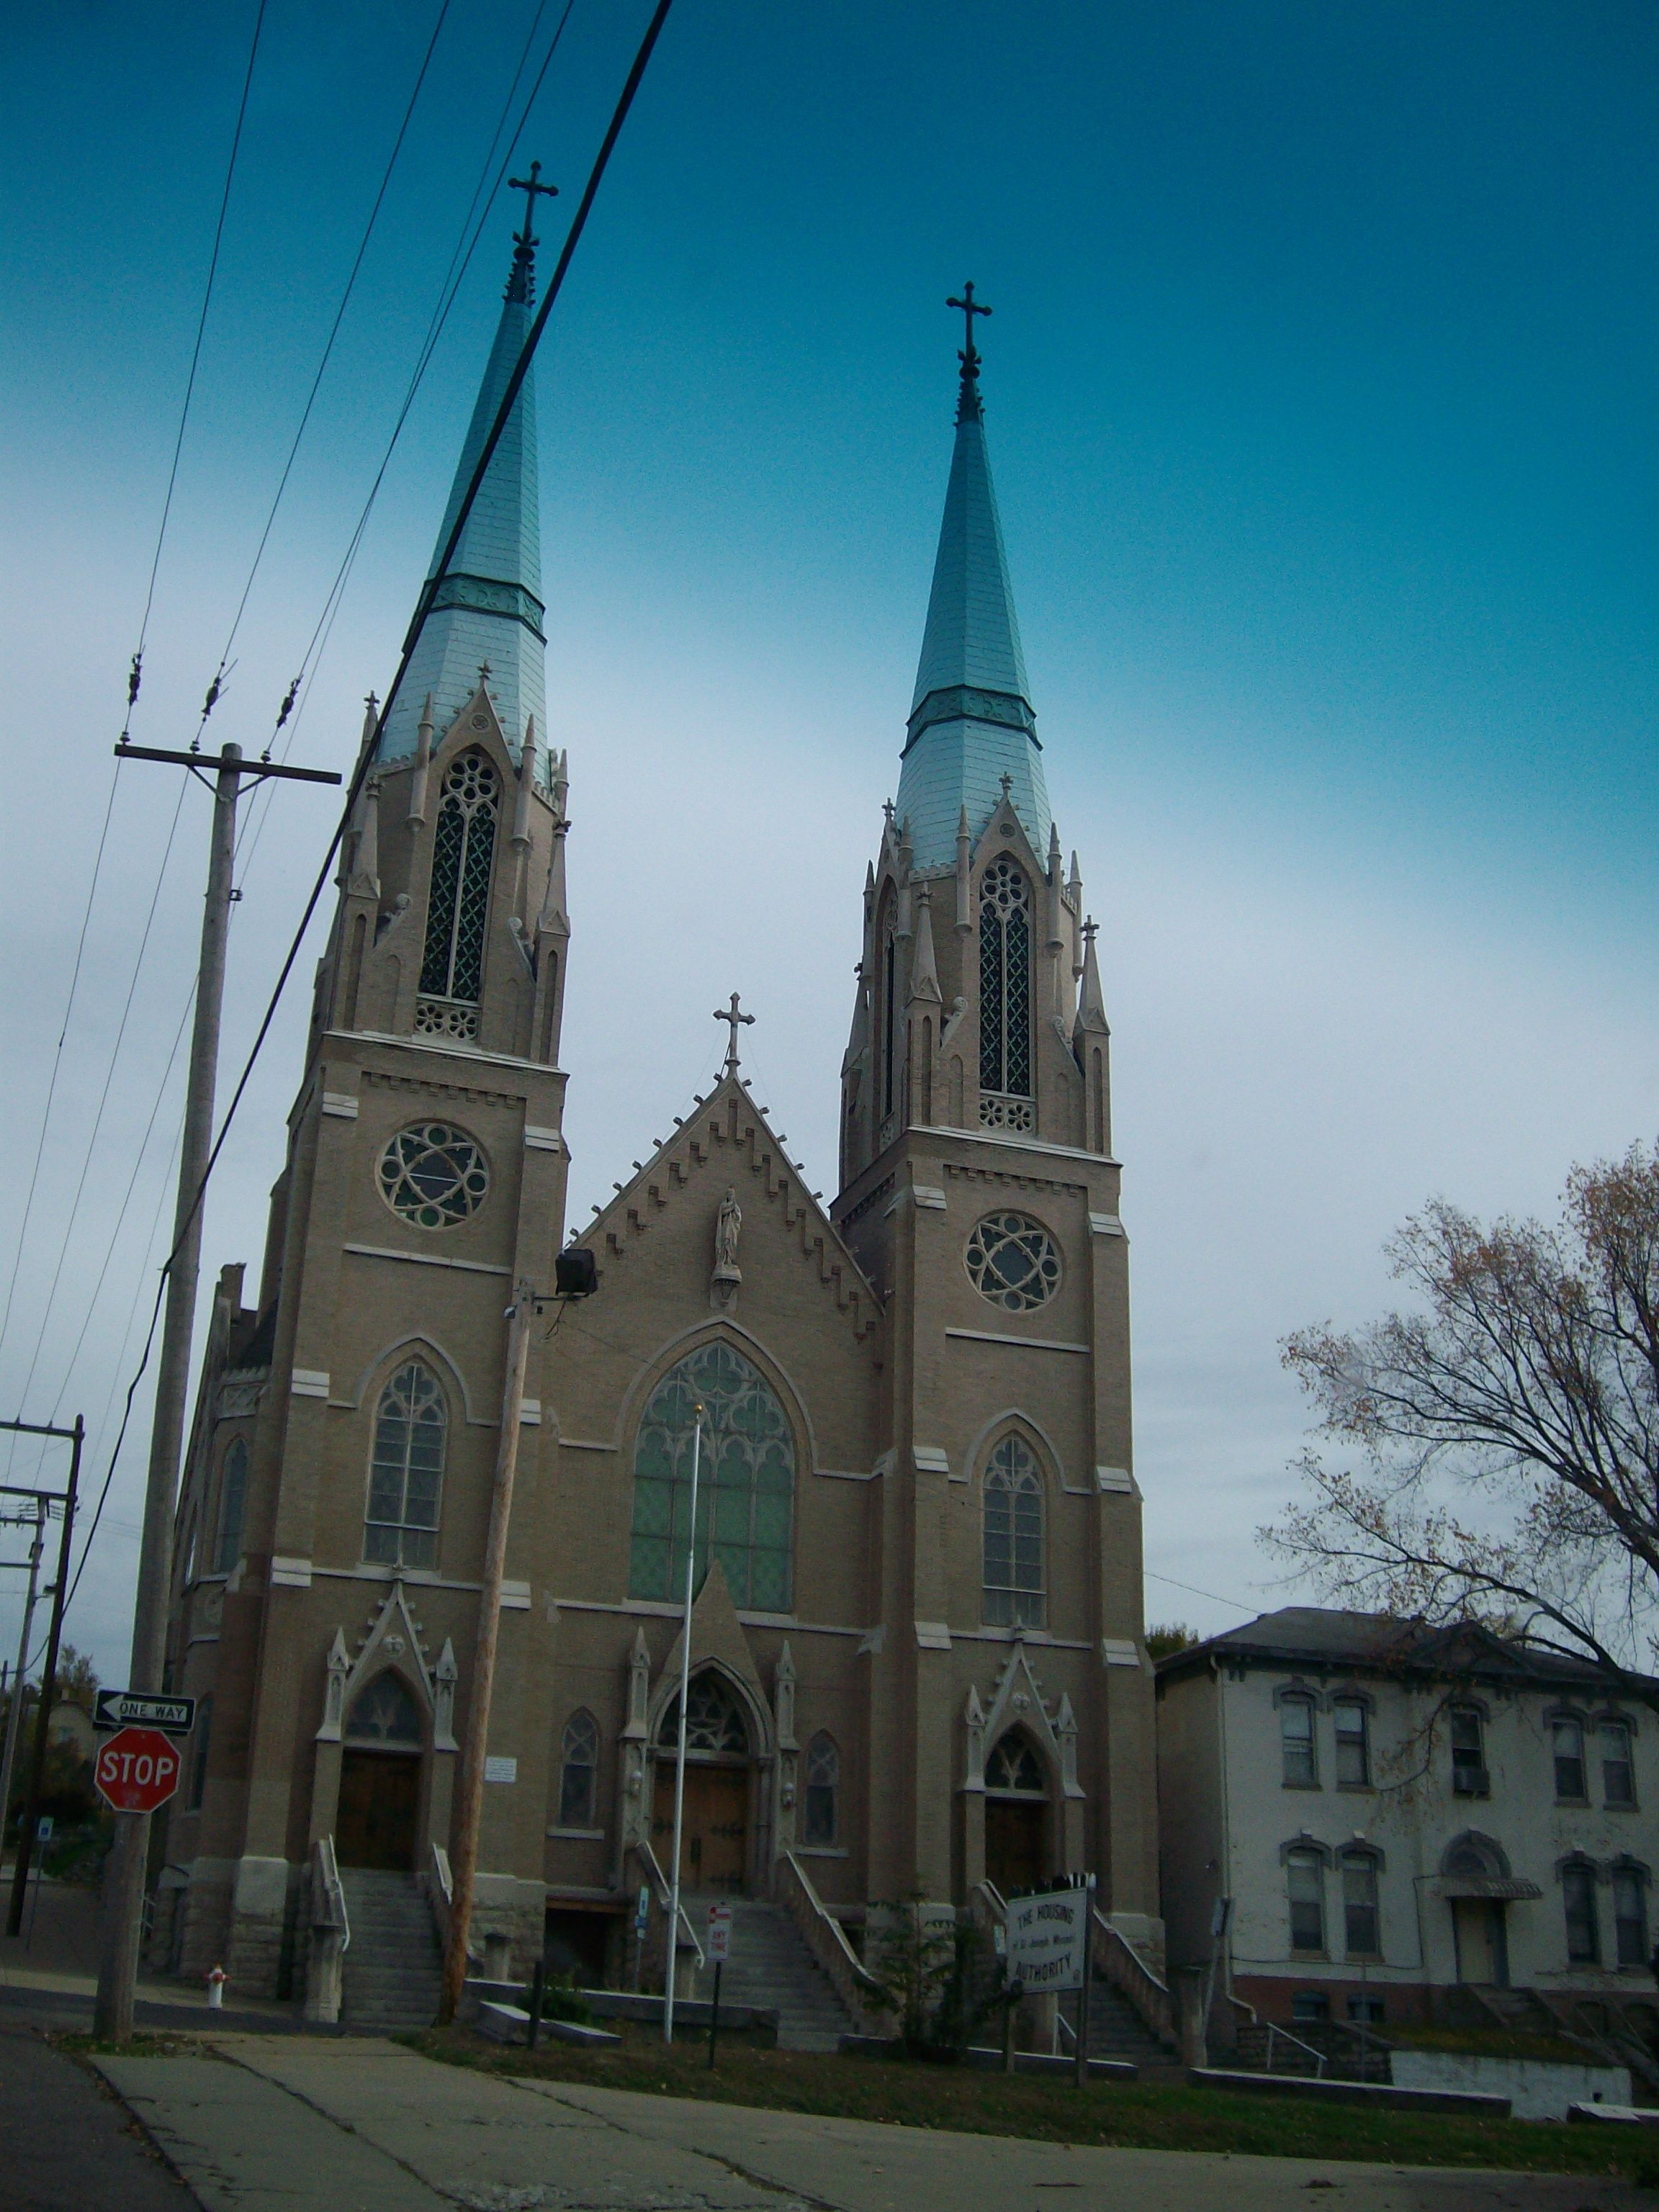 Indiana st joseph county wyatt - If You Drive Downtown You Can T Miss This Historic Church Twin Spires St Joseph